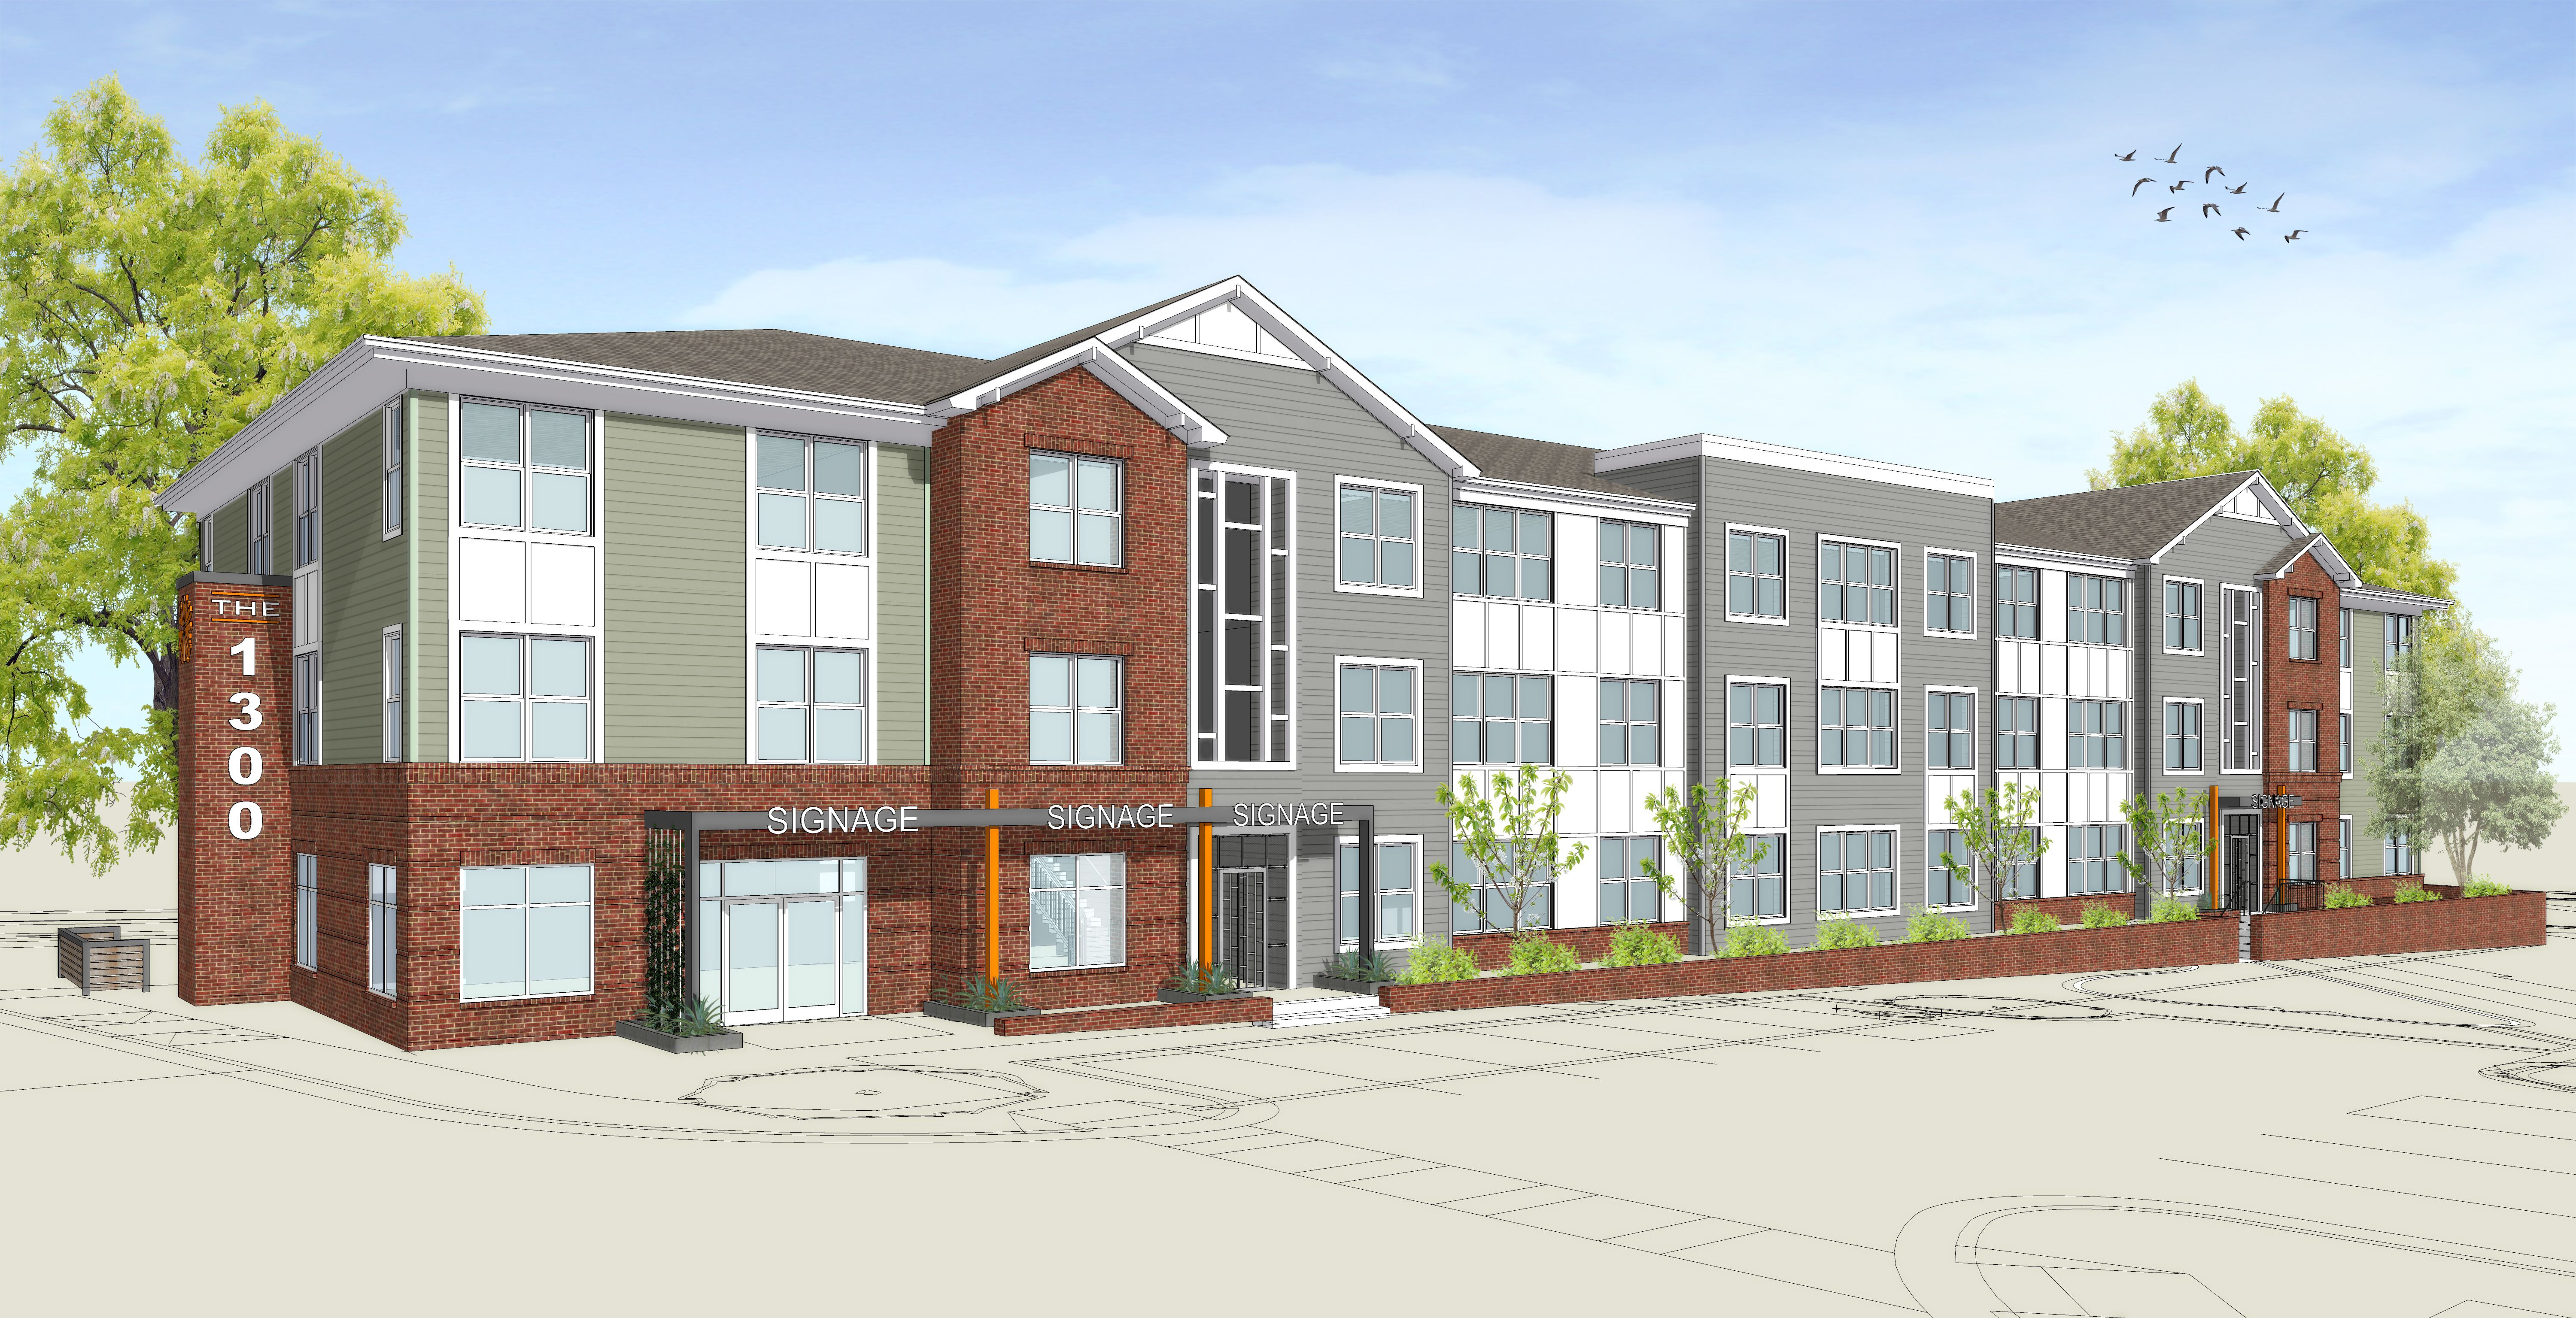 A rendering of a grey and brown apartment complex.